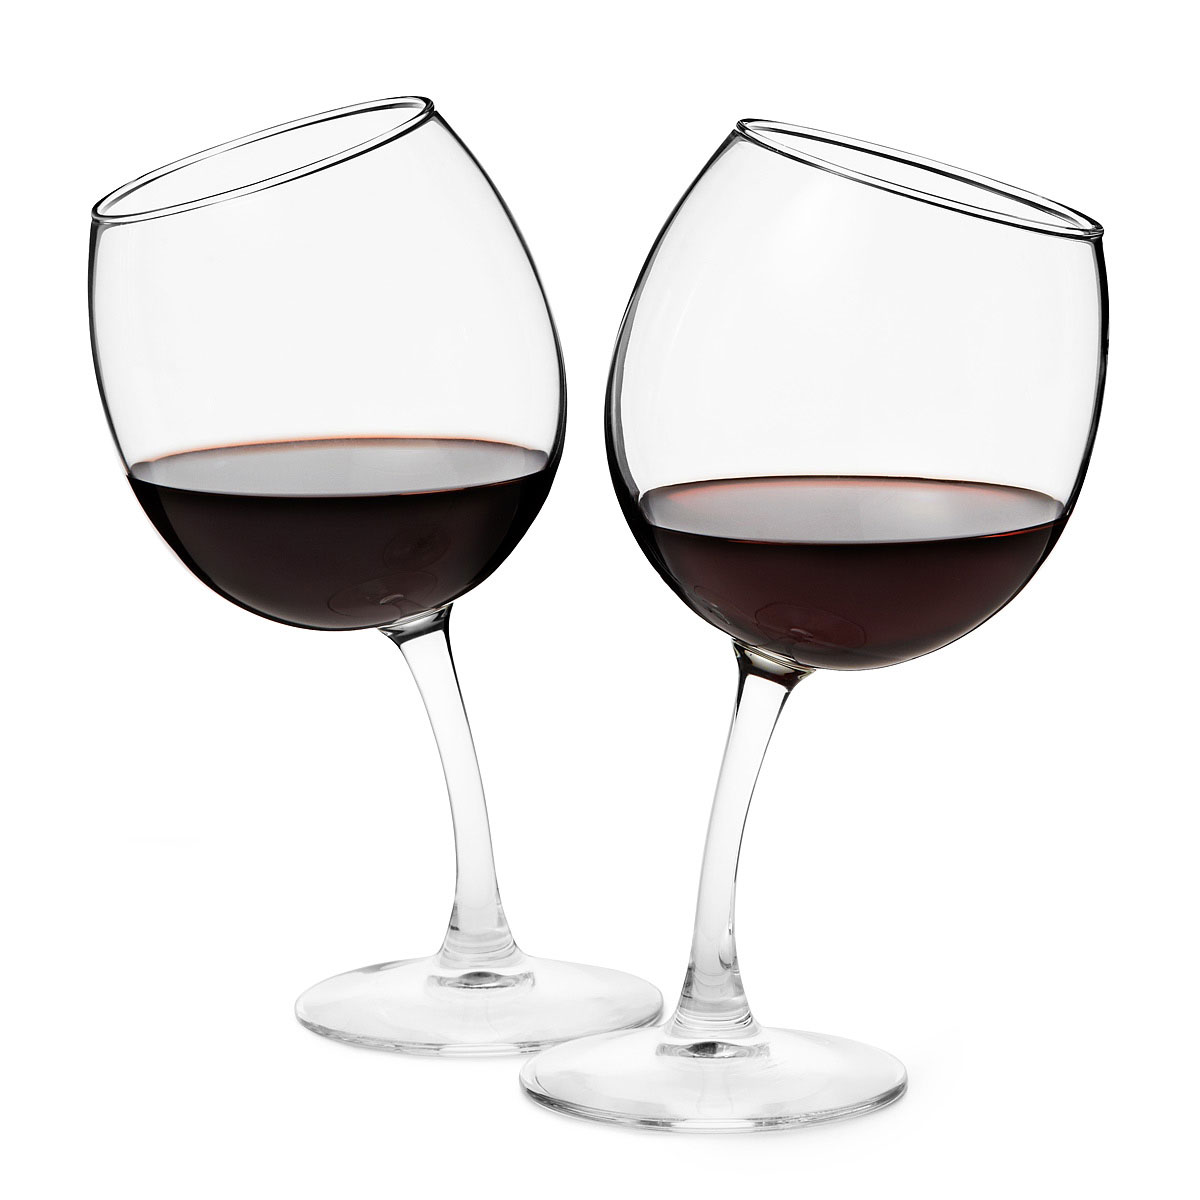 Interesting_Wine_Glass_4